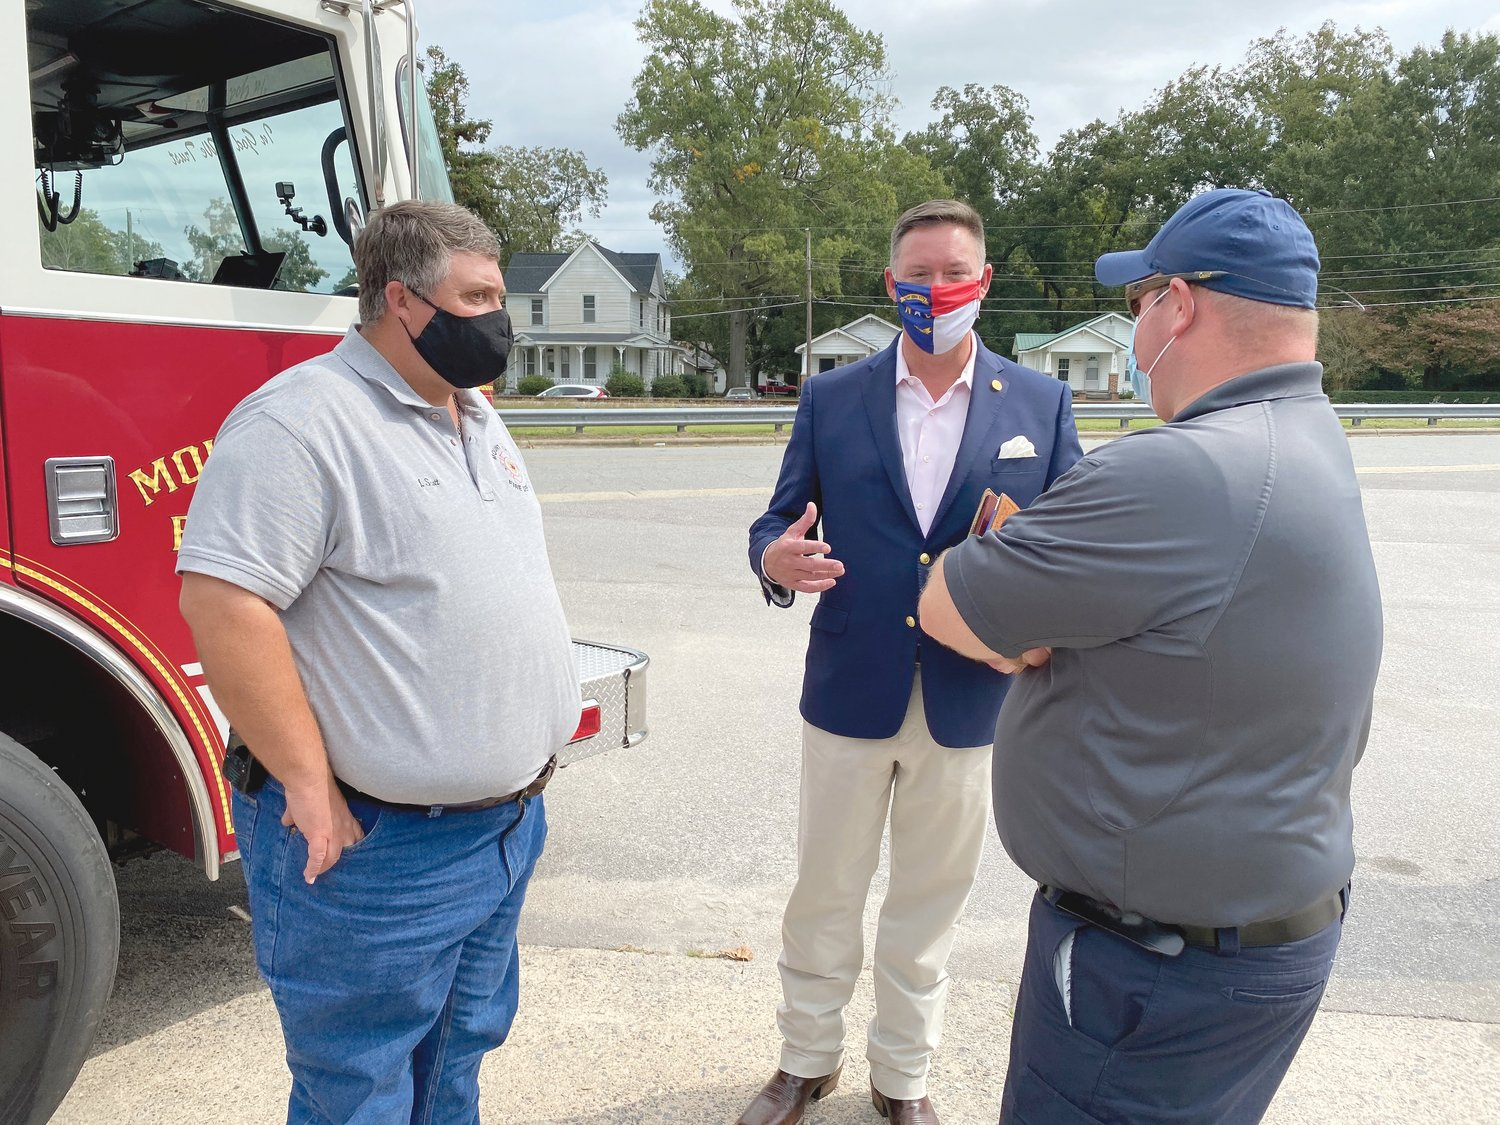 Mount Olive Fire Department Assistant Chiefs Jonathan Scott, left, and Jordan Hansen, right, talk with Robert Hosford, North Carolina director for USDA Rural Development.